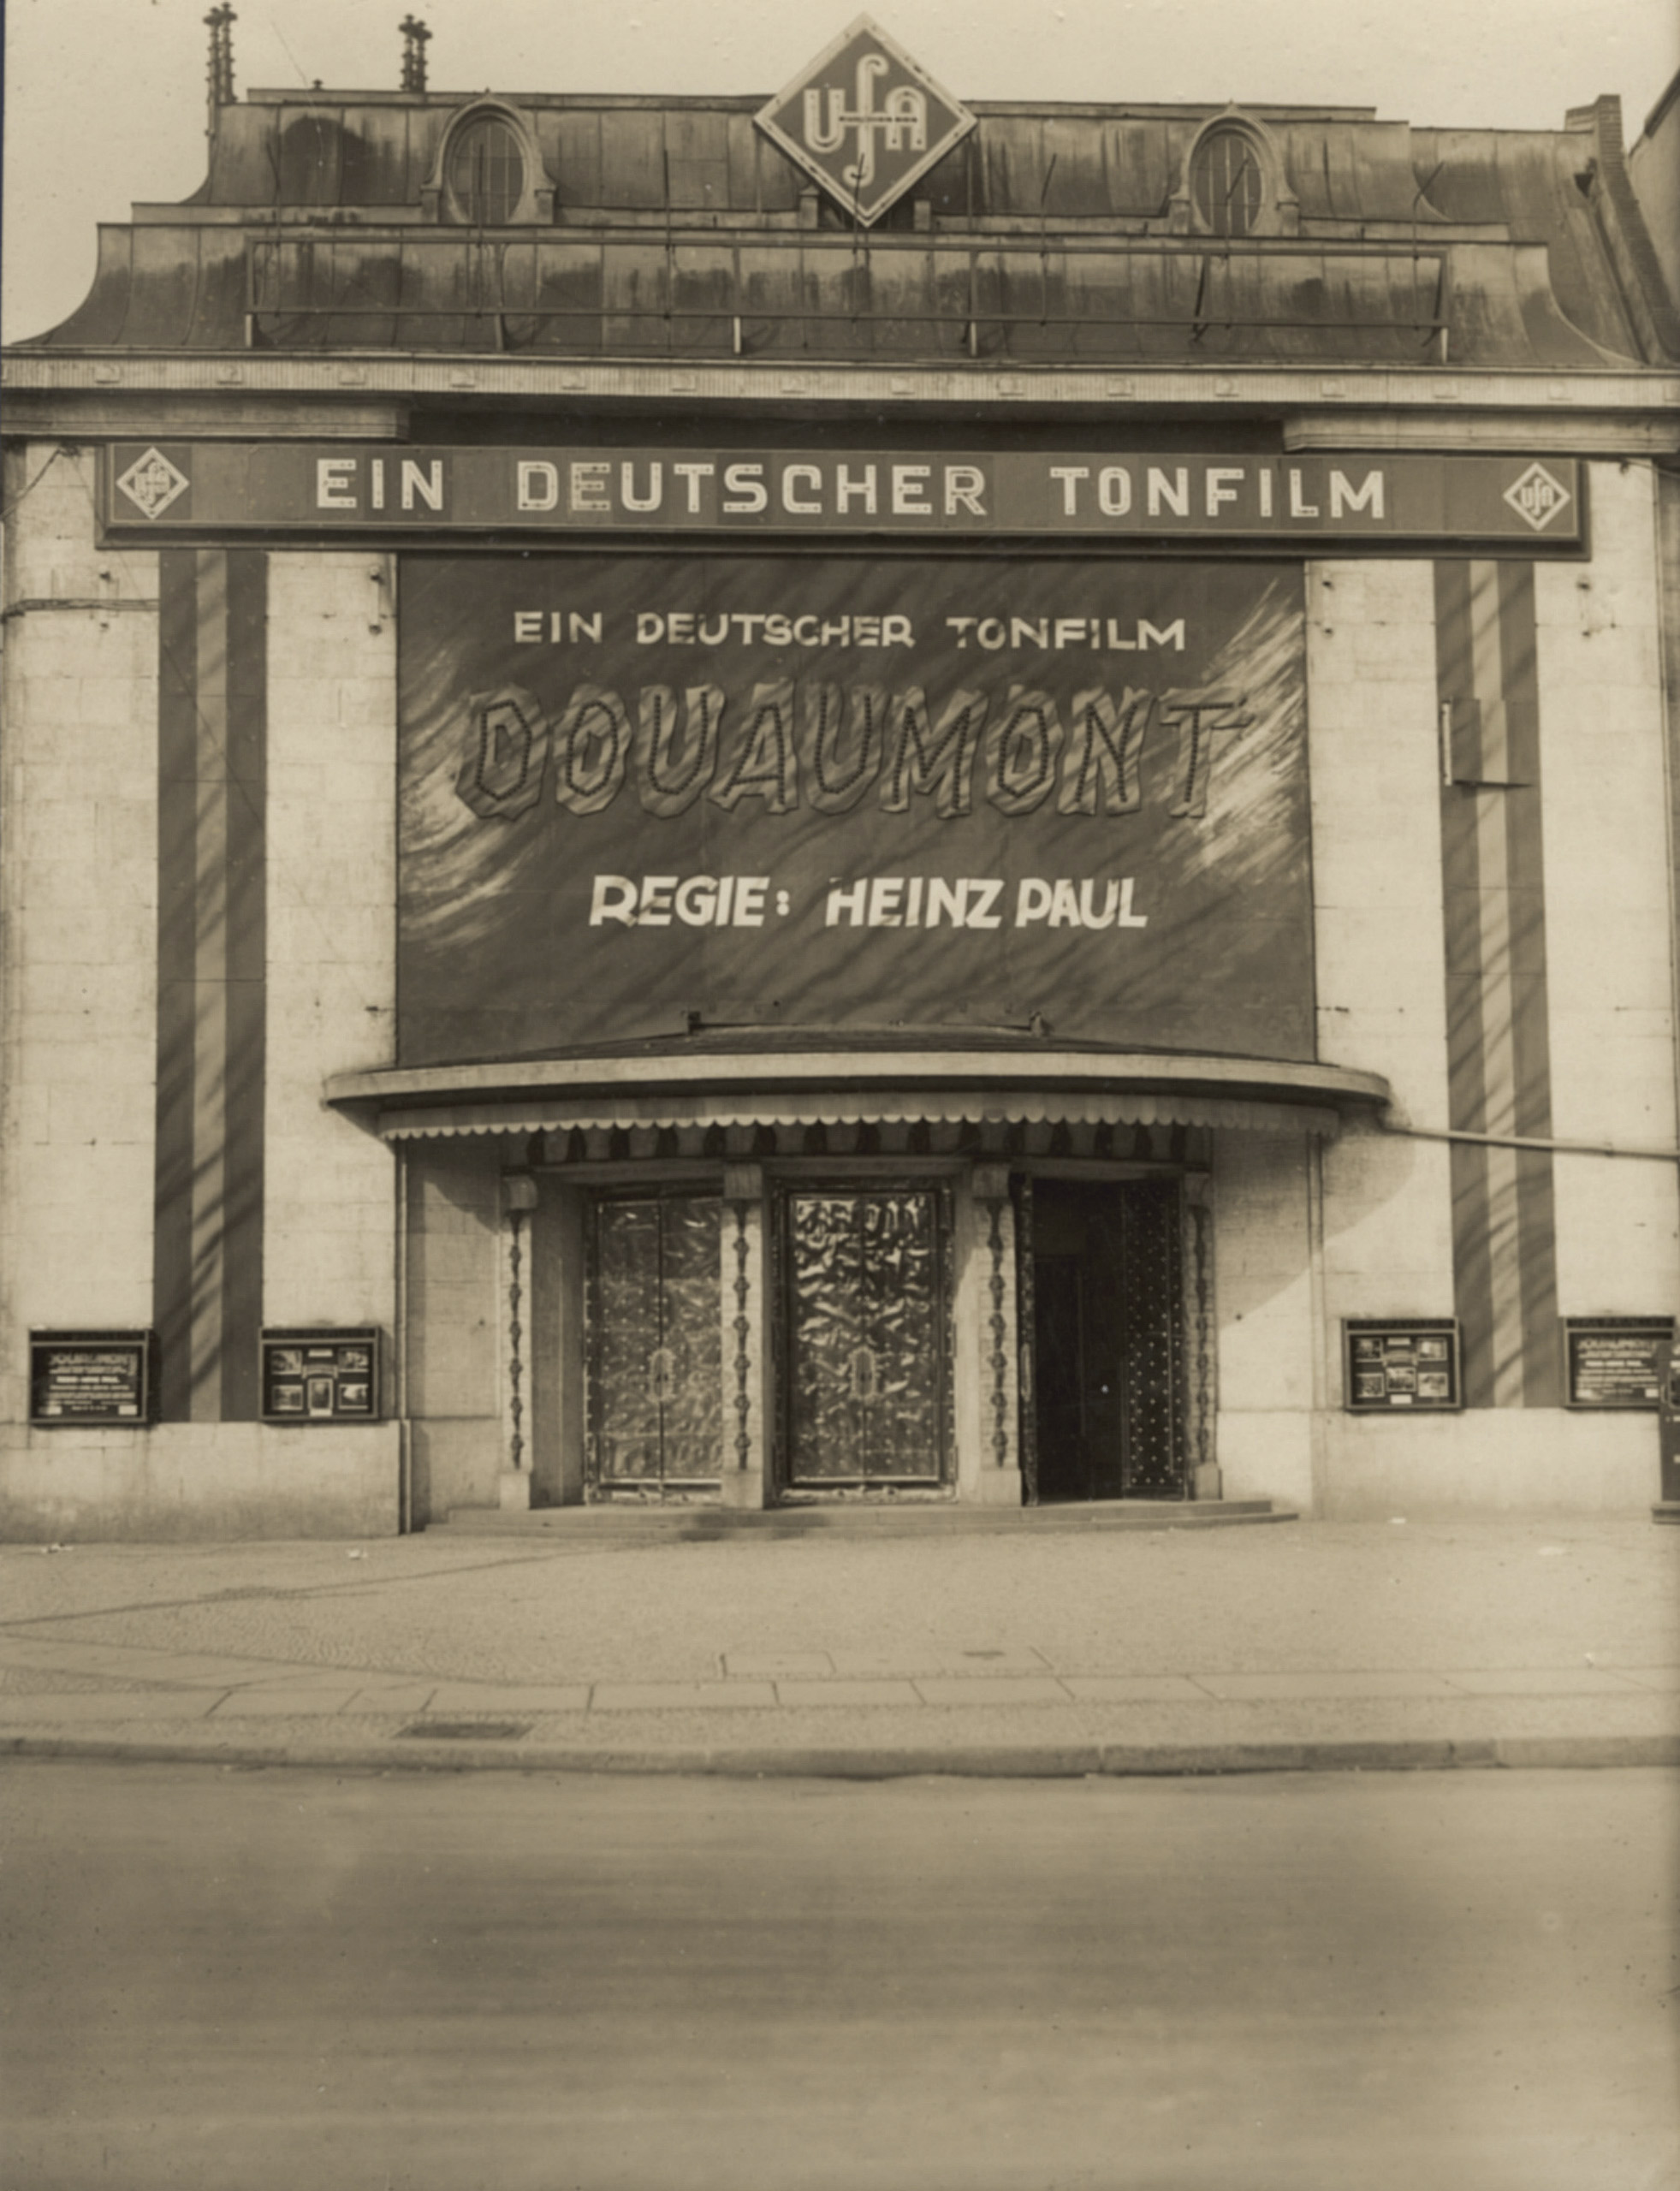 Seoia photo of the entrance with three doors and advertisements for the film Douaumont (Regie: Heinz Paul)